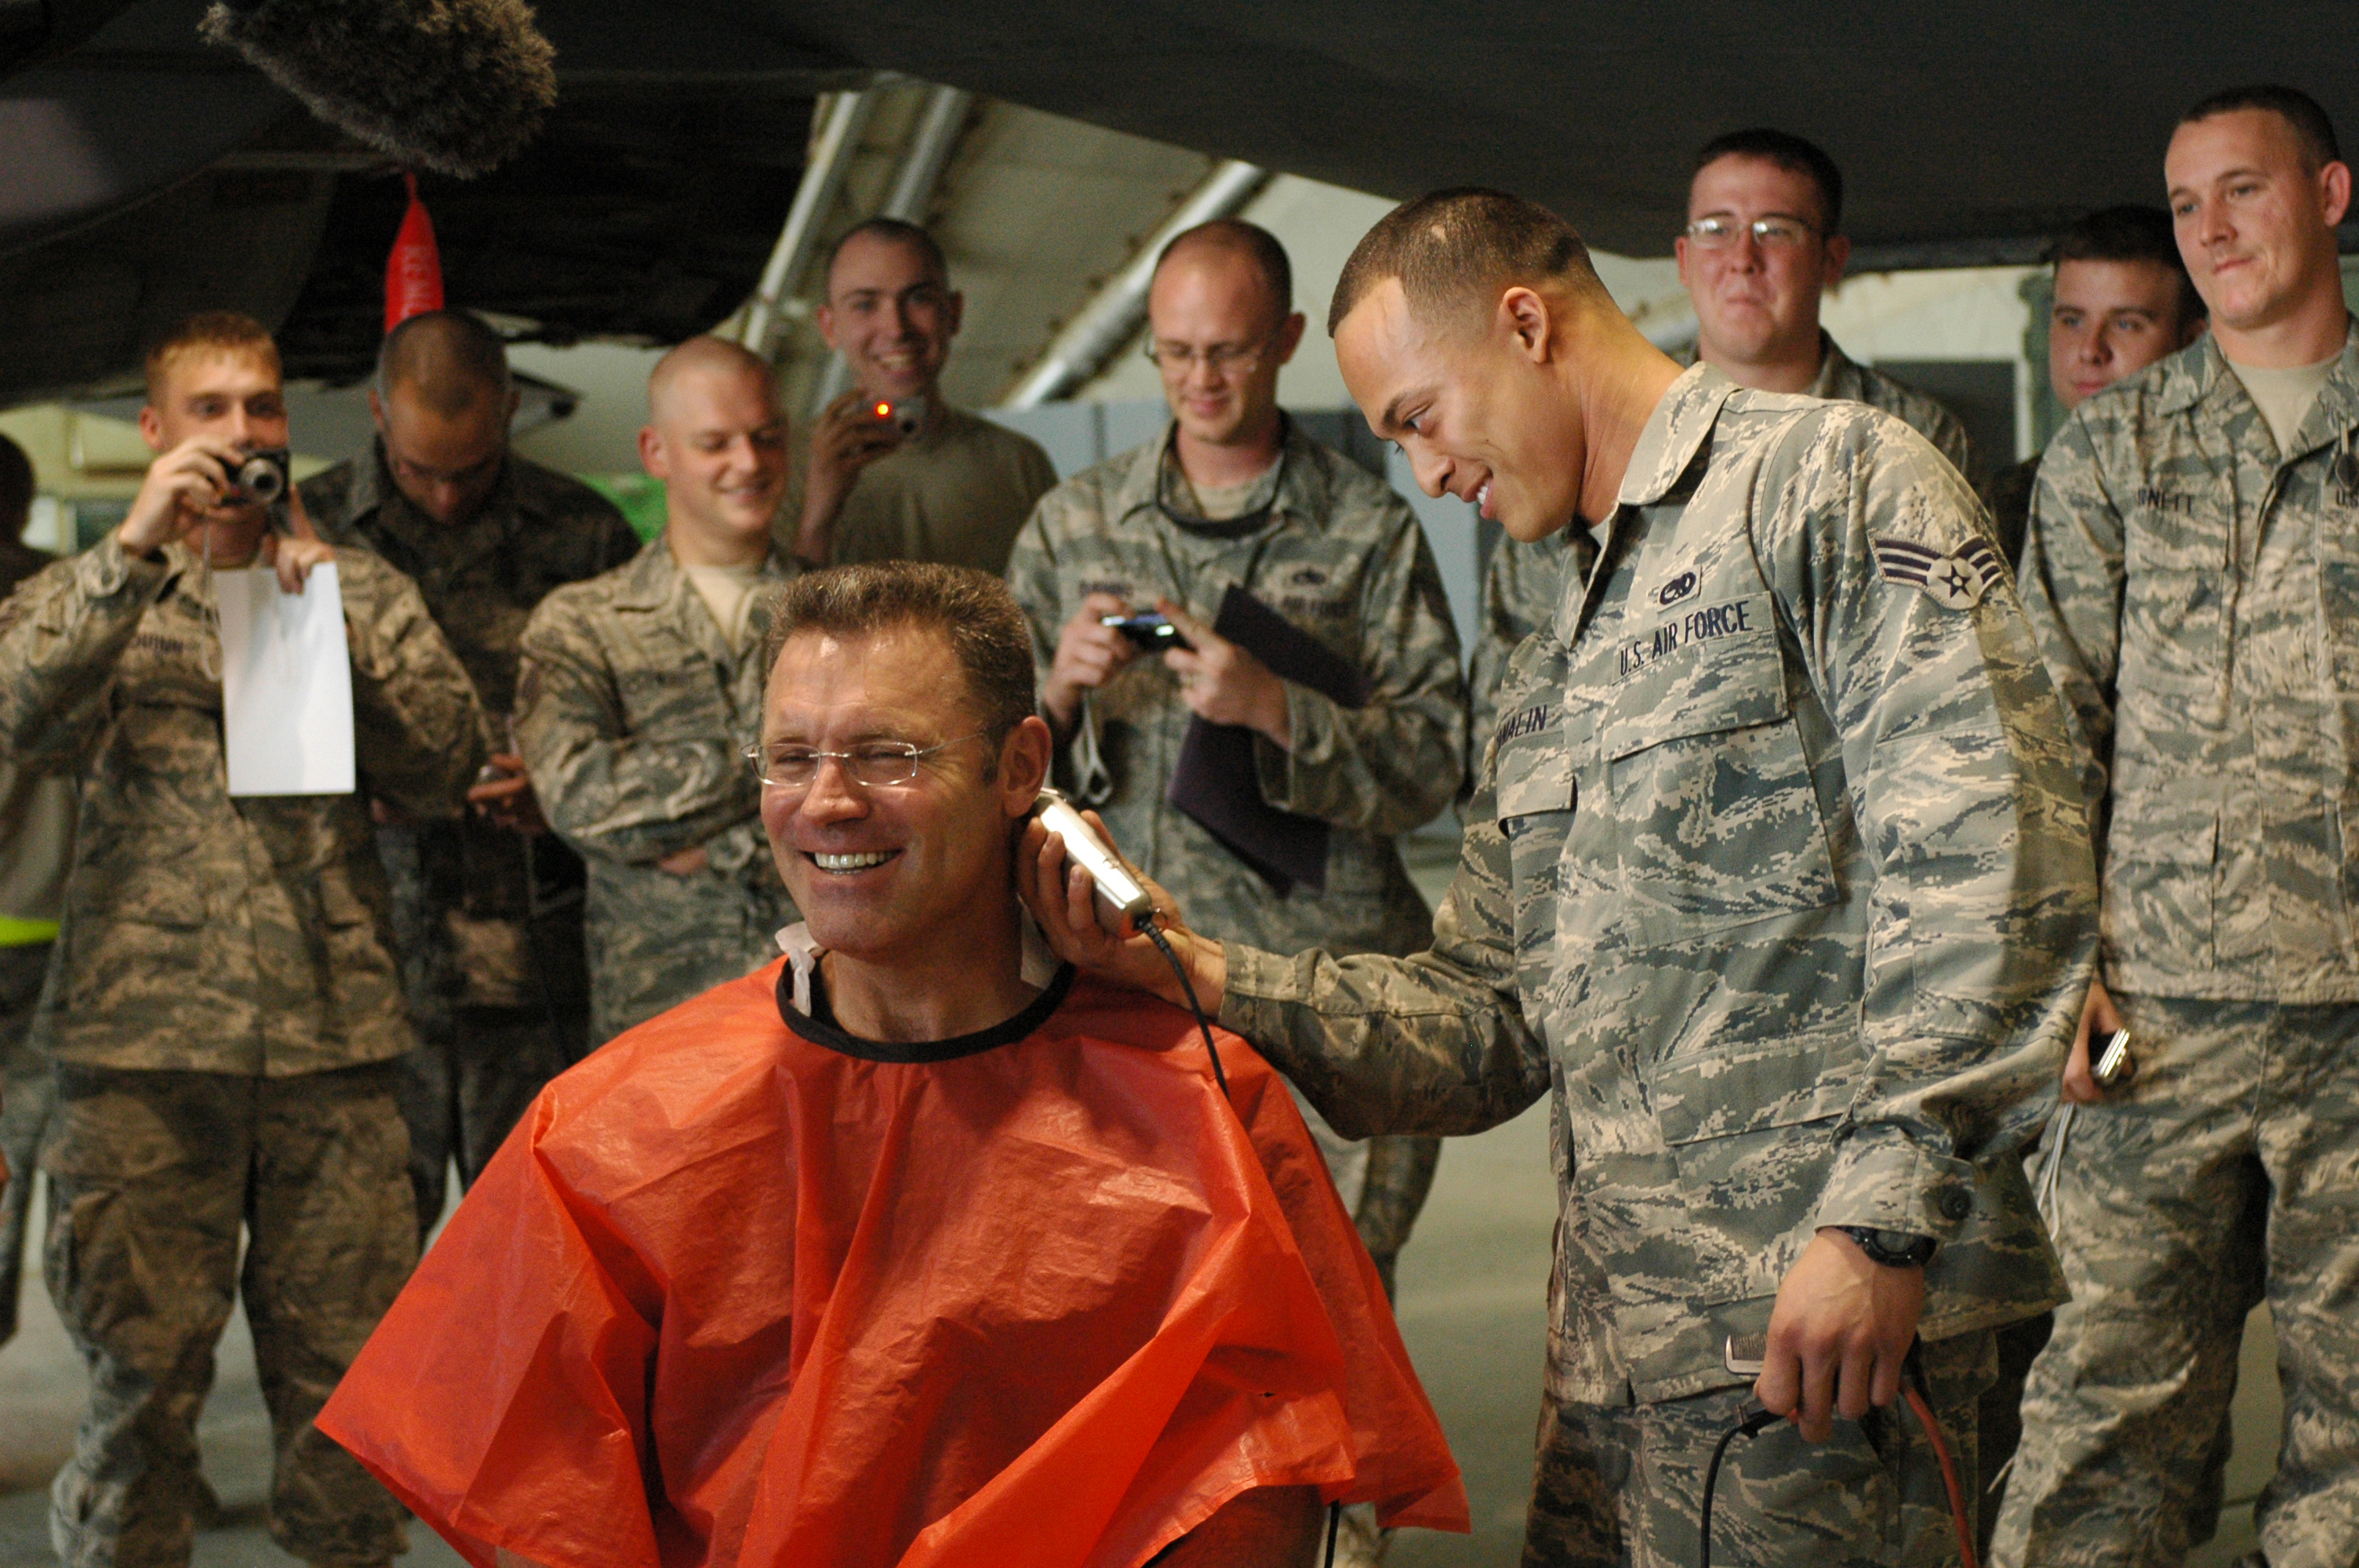 File:Howie Long haircut Bagram AF base.jpg - Wikimedia Commons